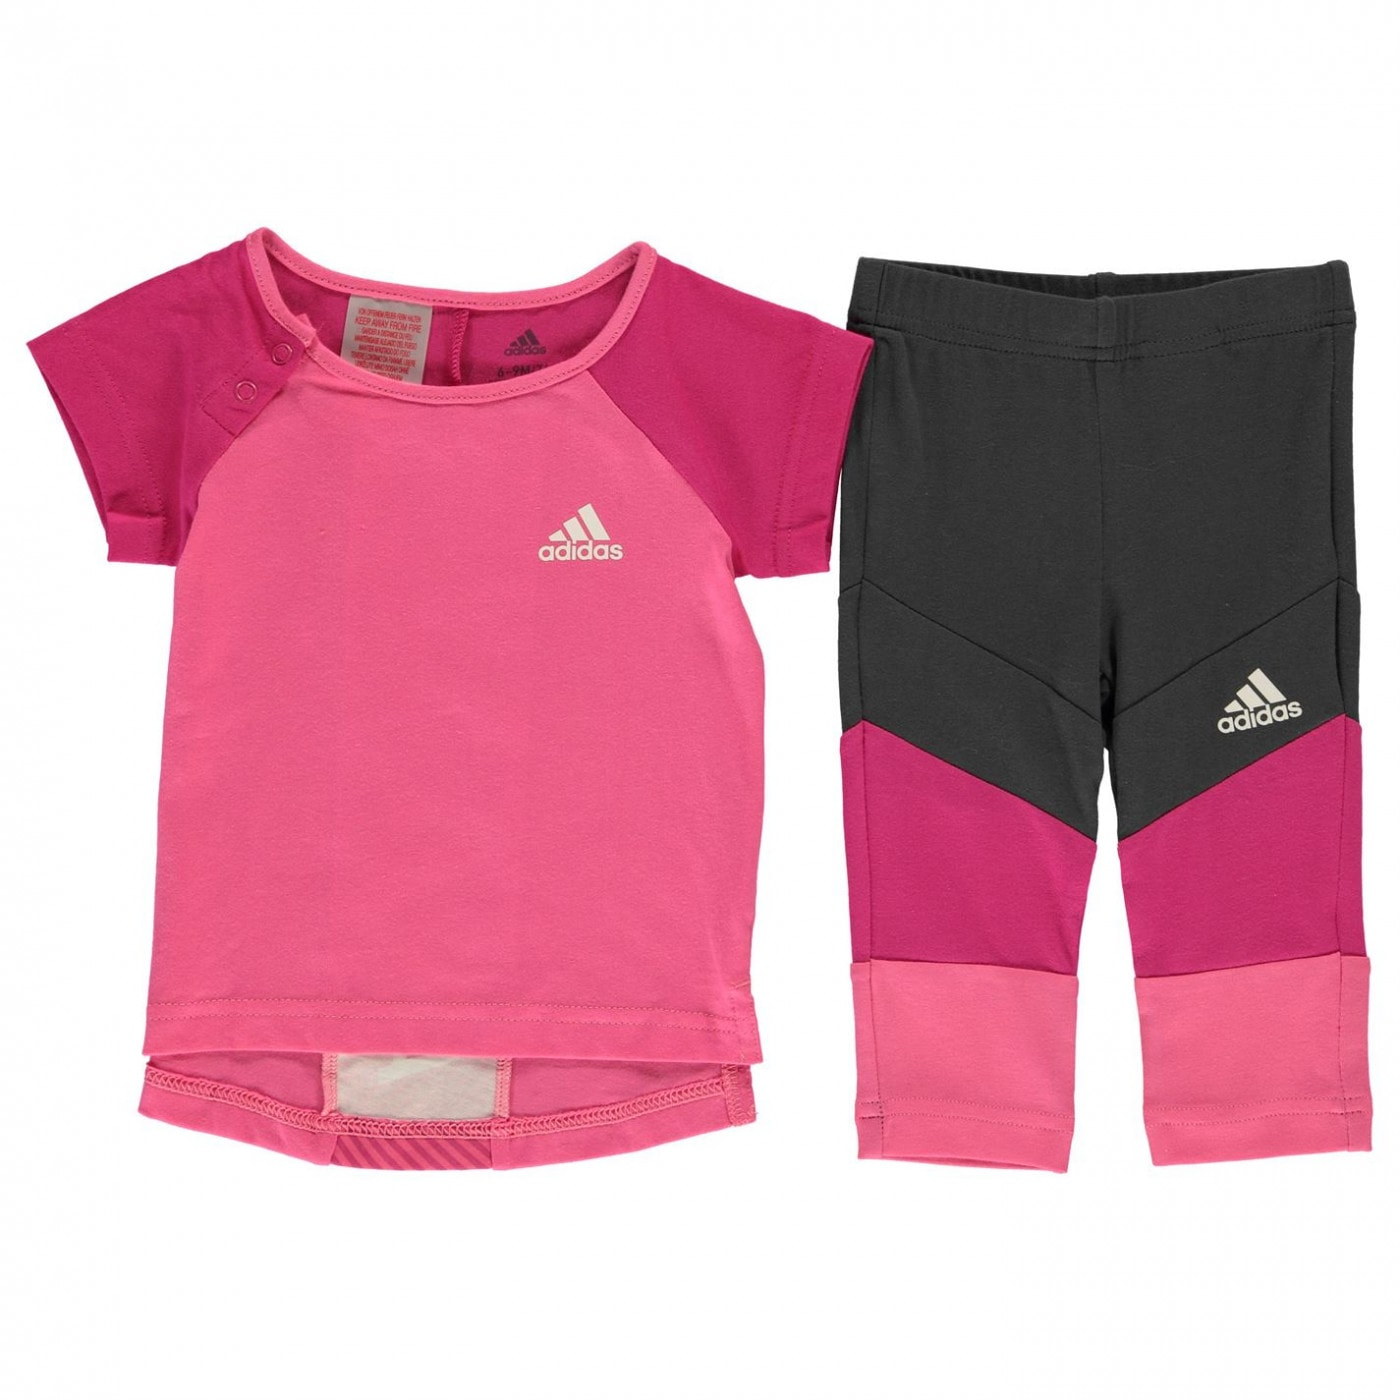 46af4010a13a Adidas Baby Girls T Shirt And Leggings Set - FACTCOOL